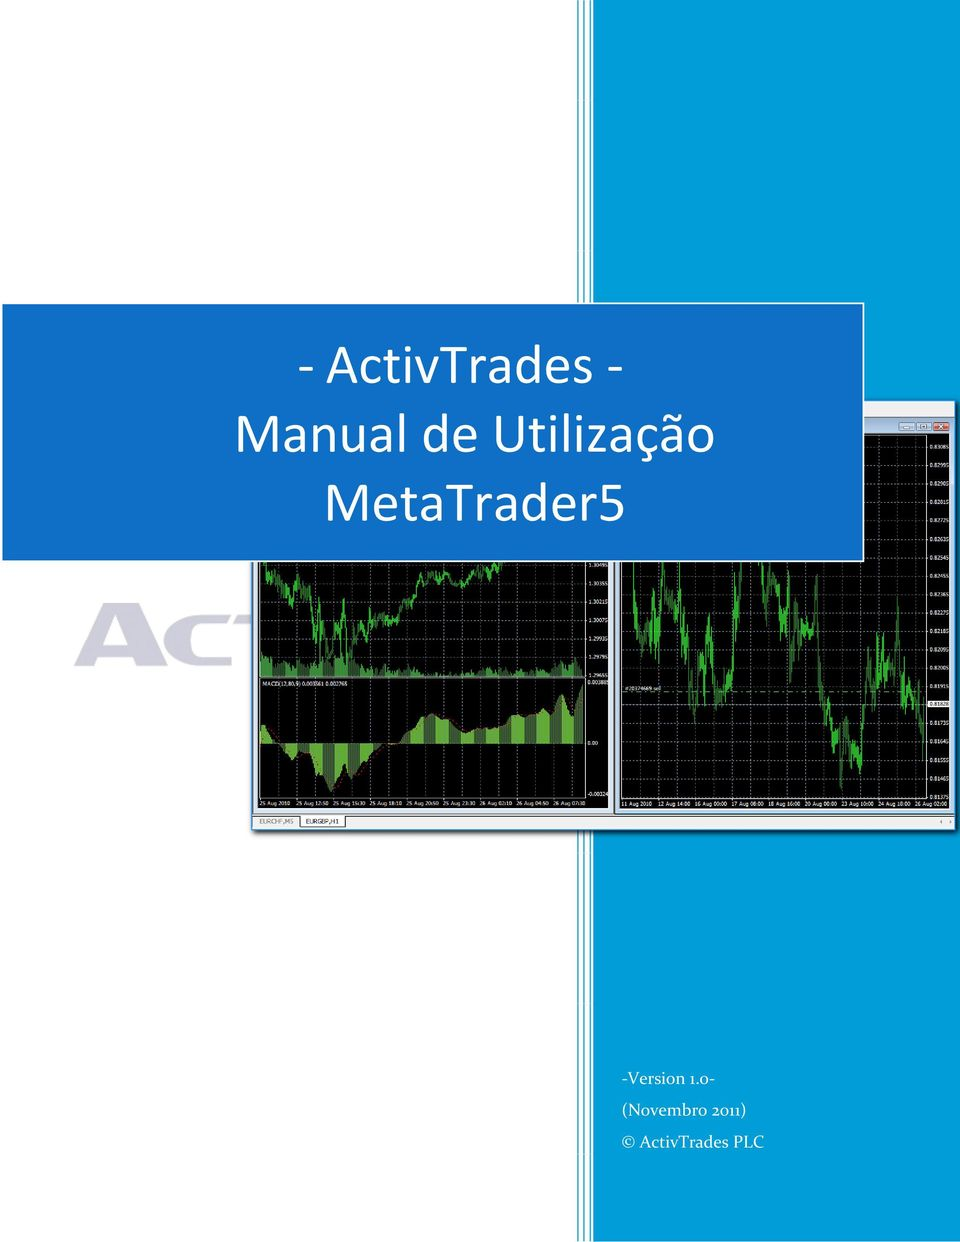 MetaTrader5 -Version 1.